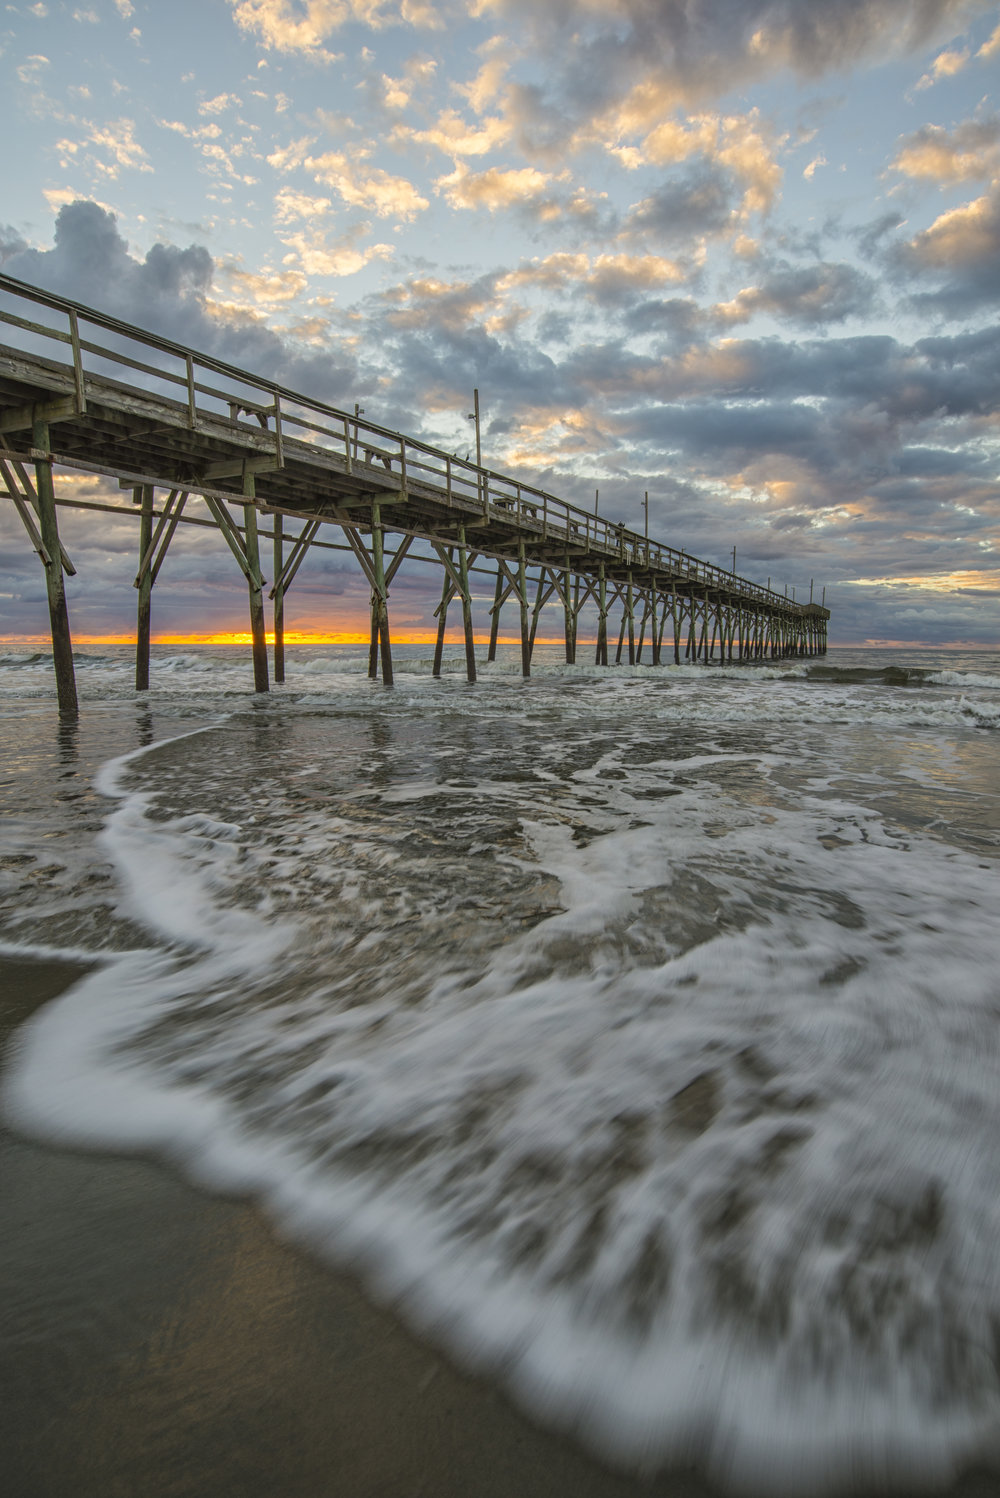 Sunrise at Sunset Beach, North Carolina